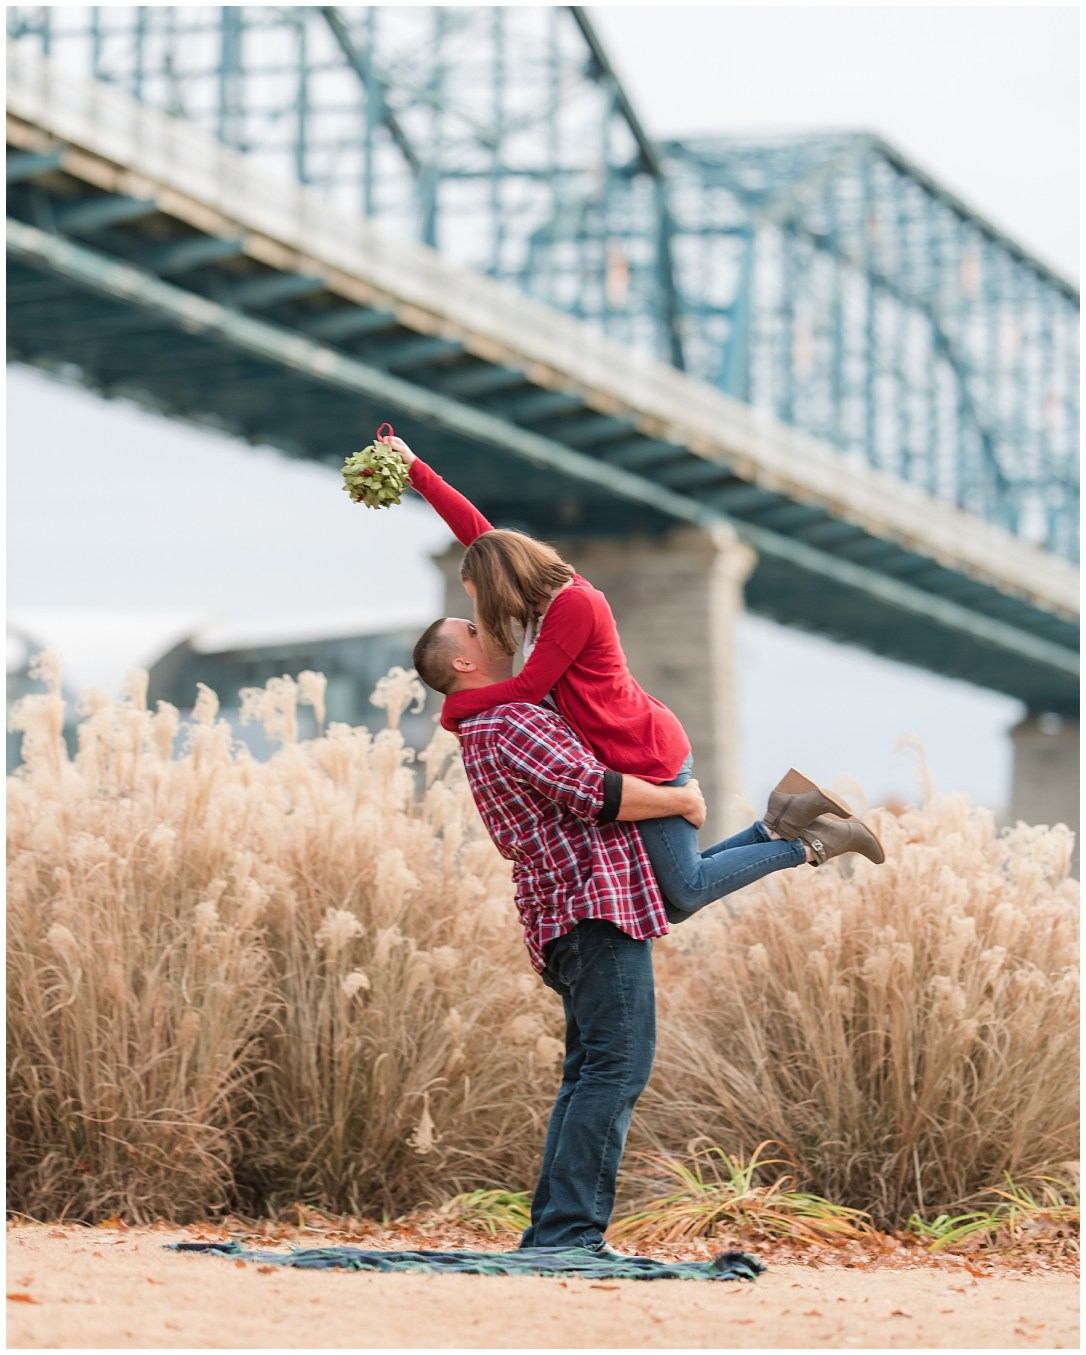 Mistletoe in engagement photos